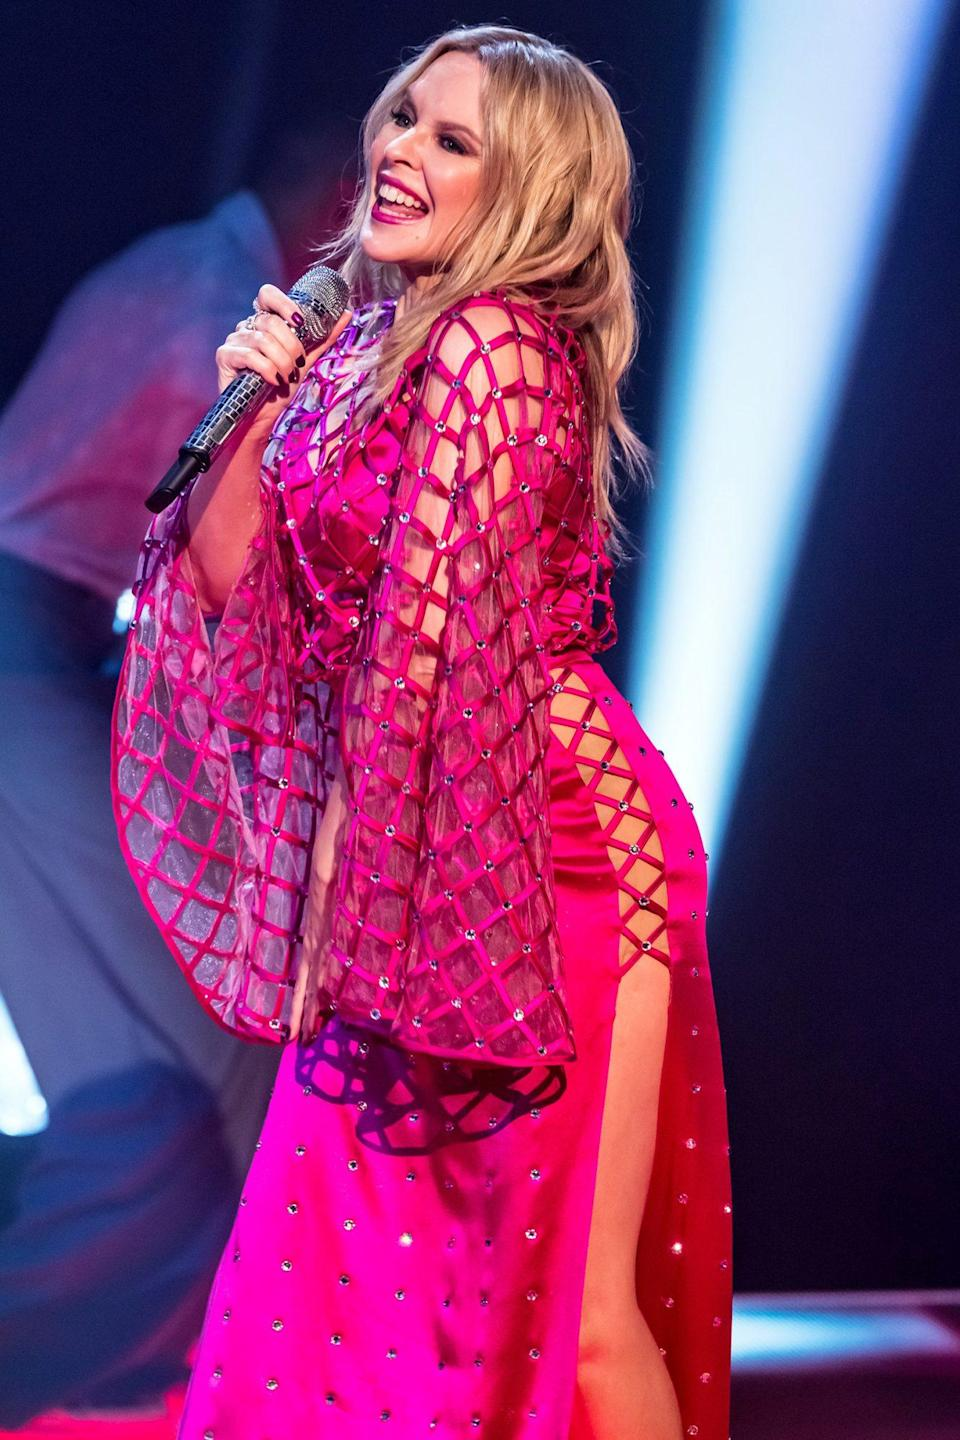 <p>Kylie Minogue hits the stage in a hot pink, bedazzled ensemble on <em>The Jonathan Ross Show</em> on Wednesday in London.</p>